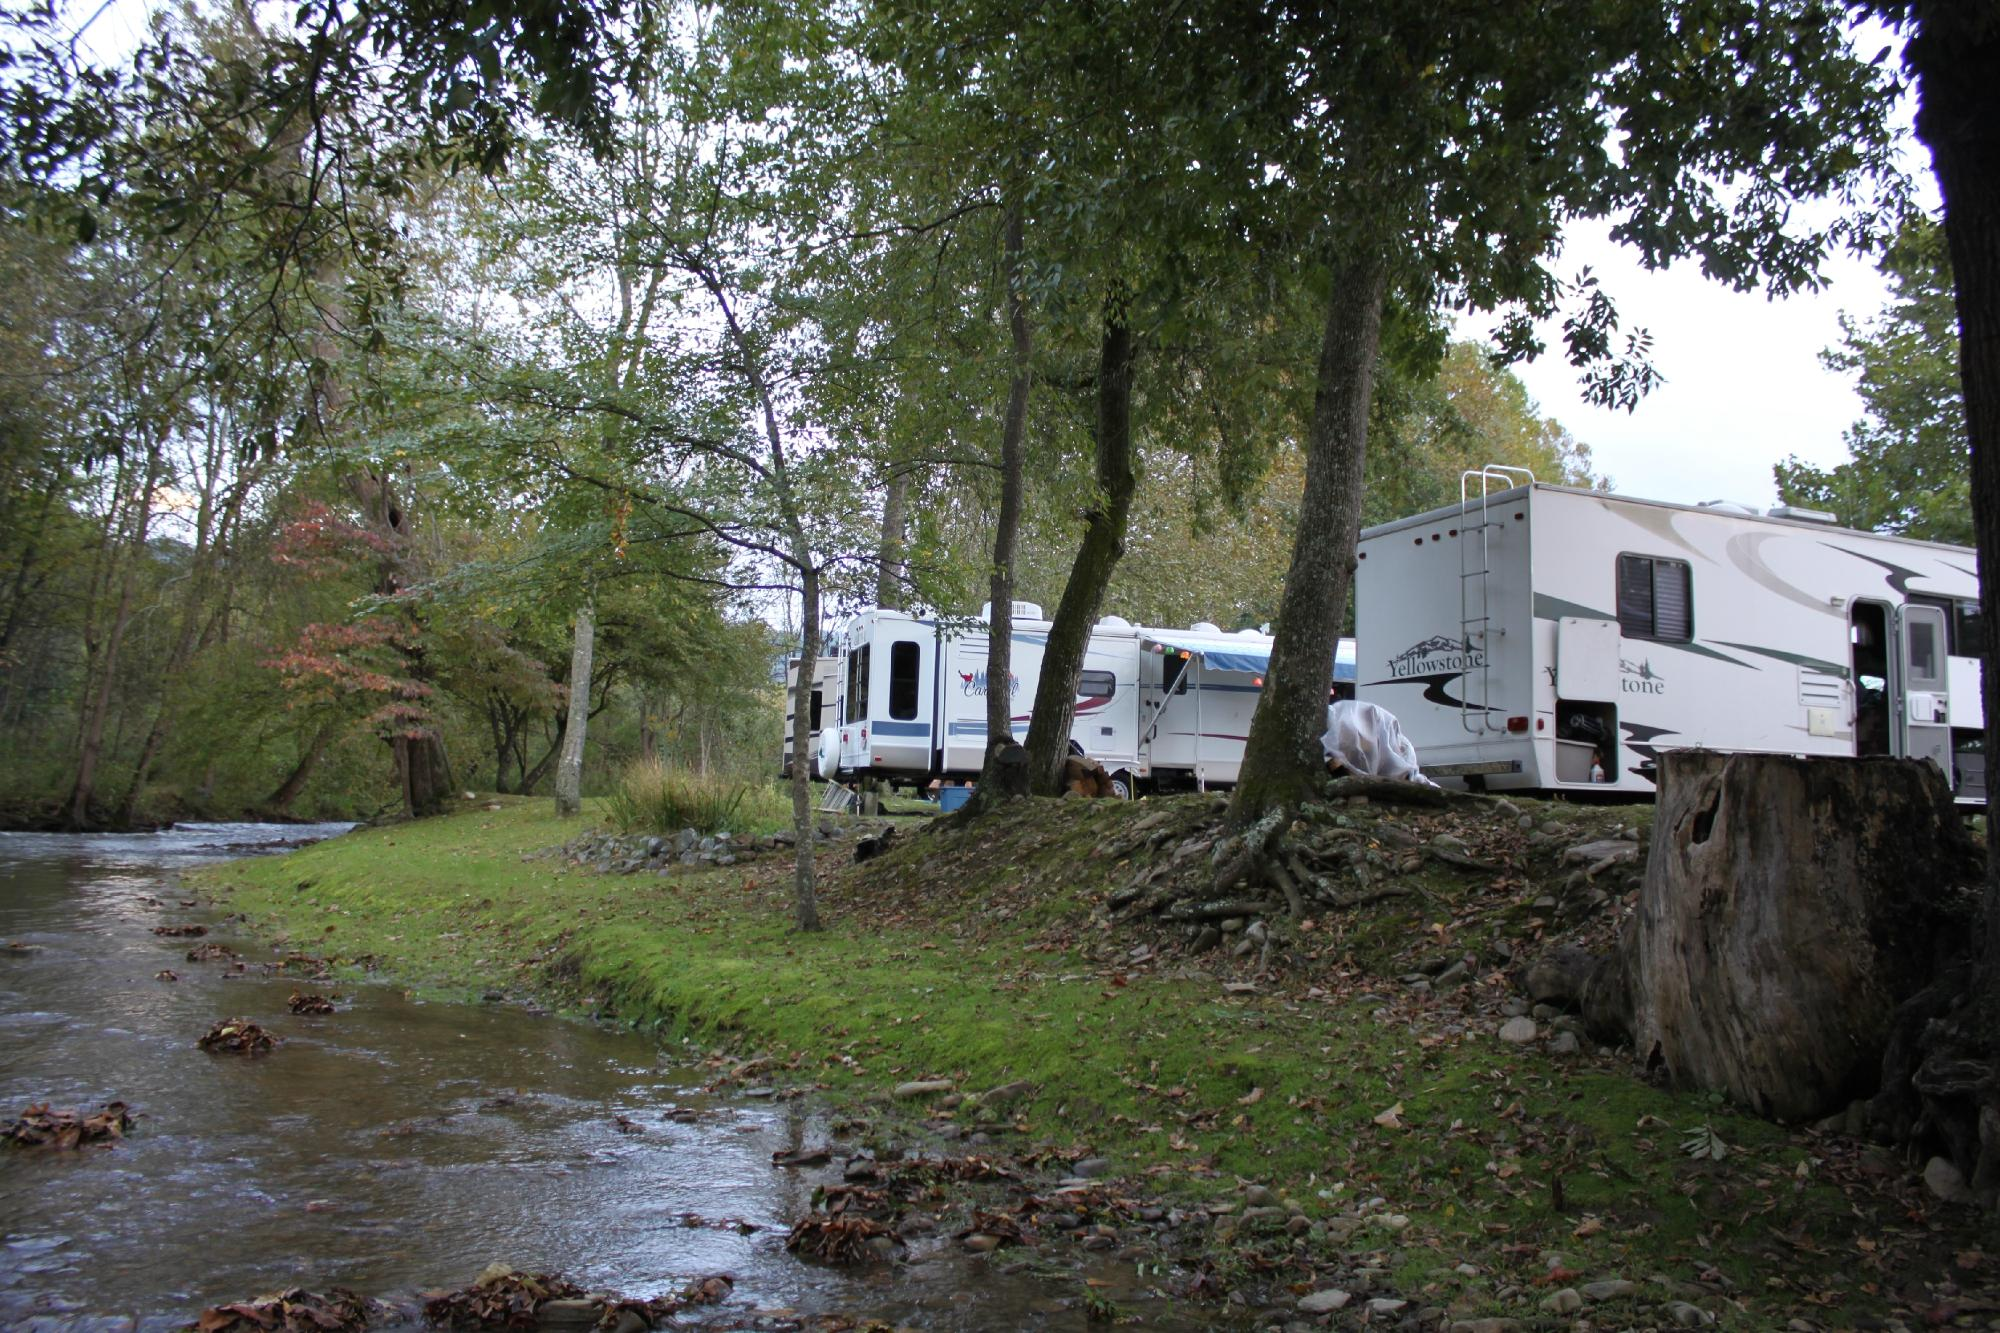 Creekwood Farm RV Park